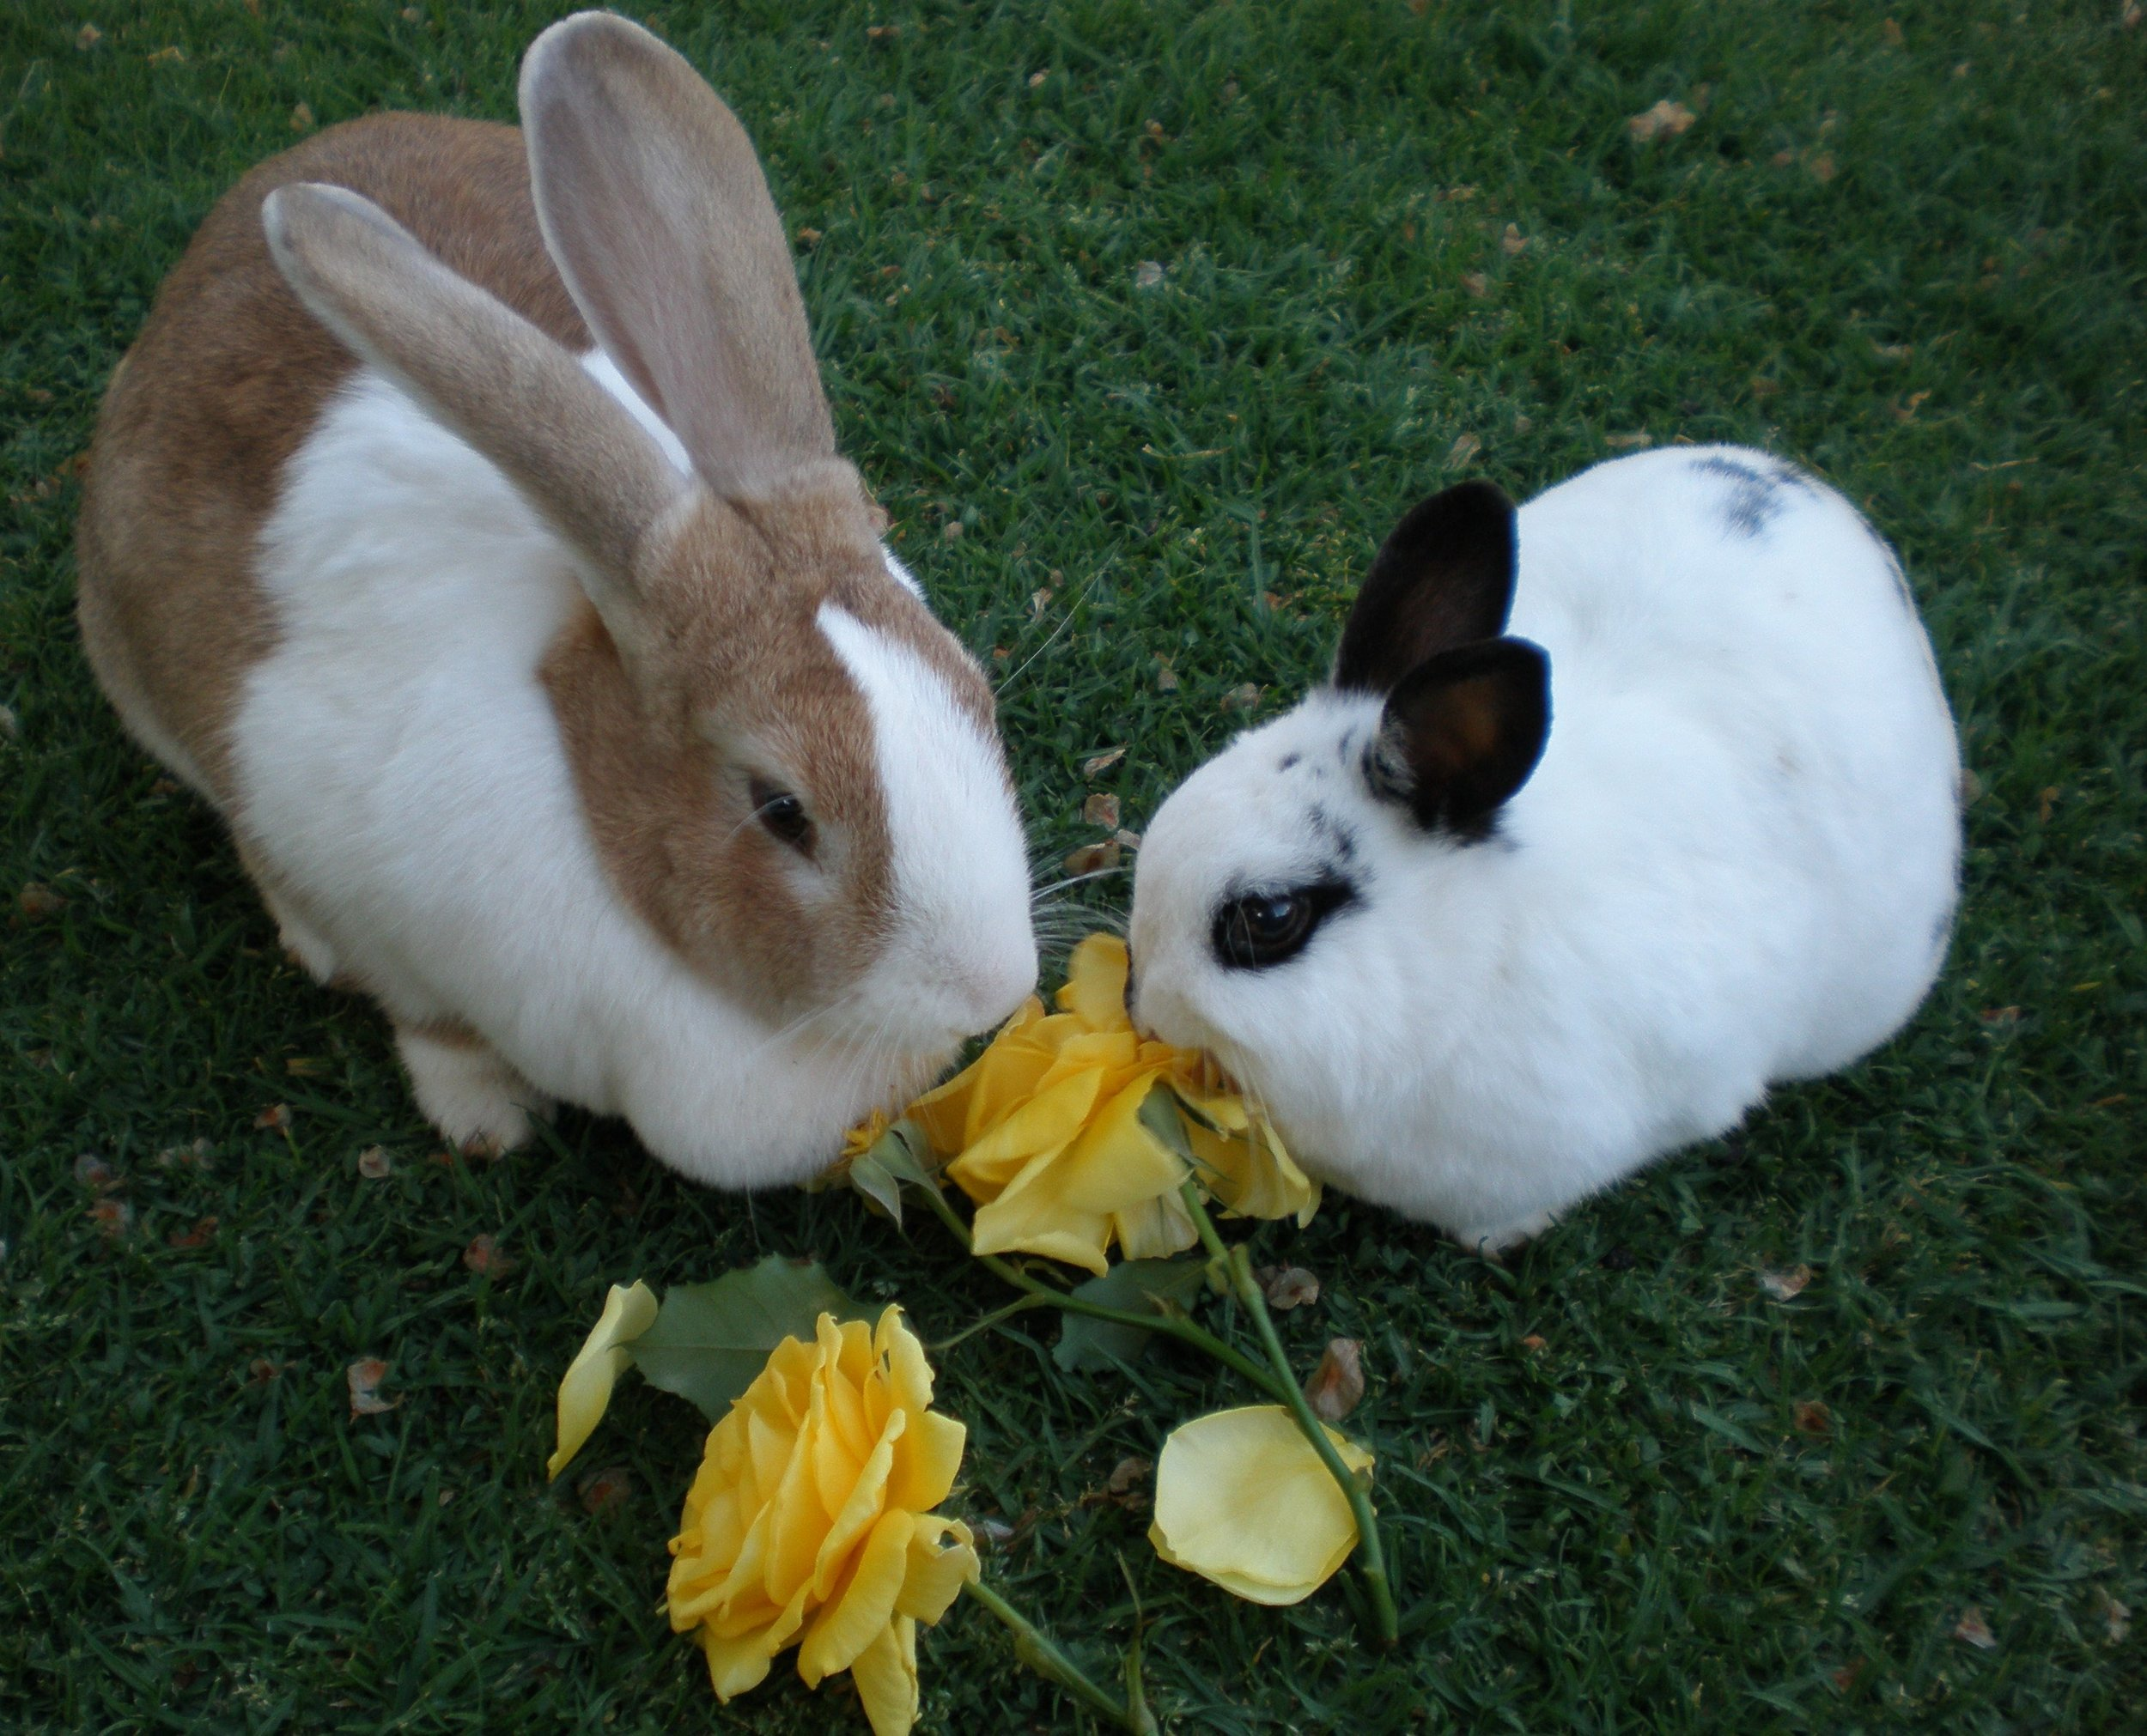 Bunnies Share a Flowery Treat